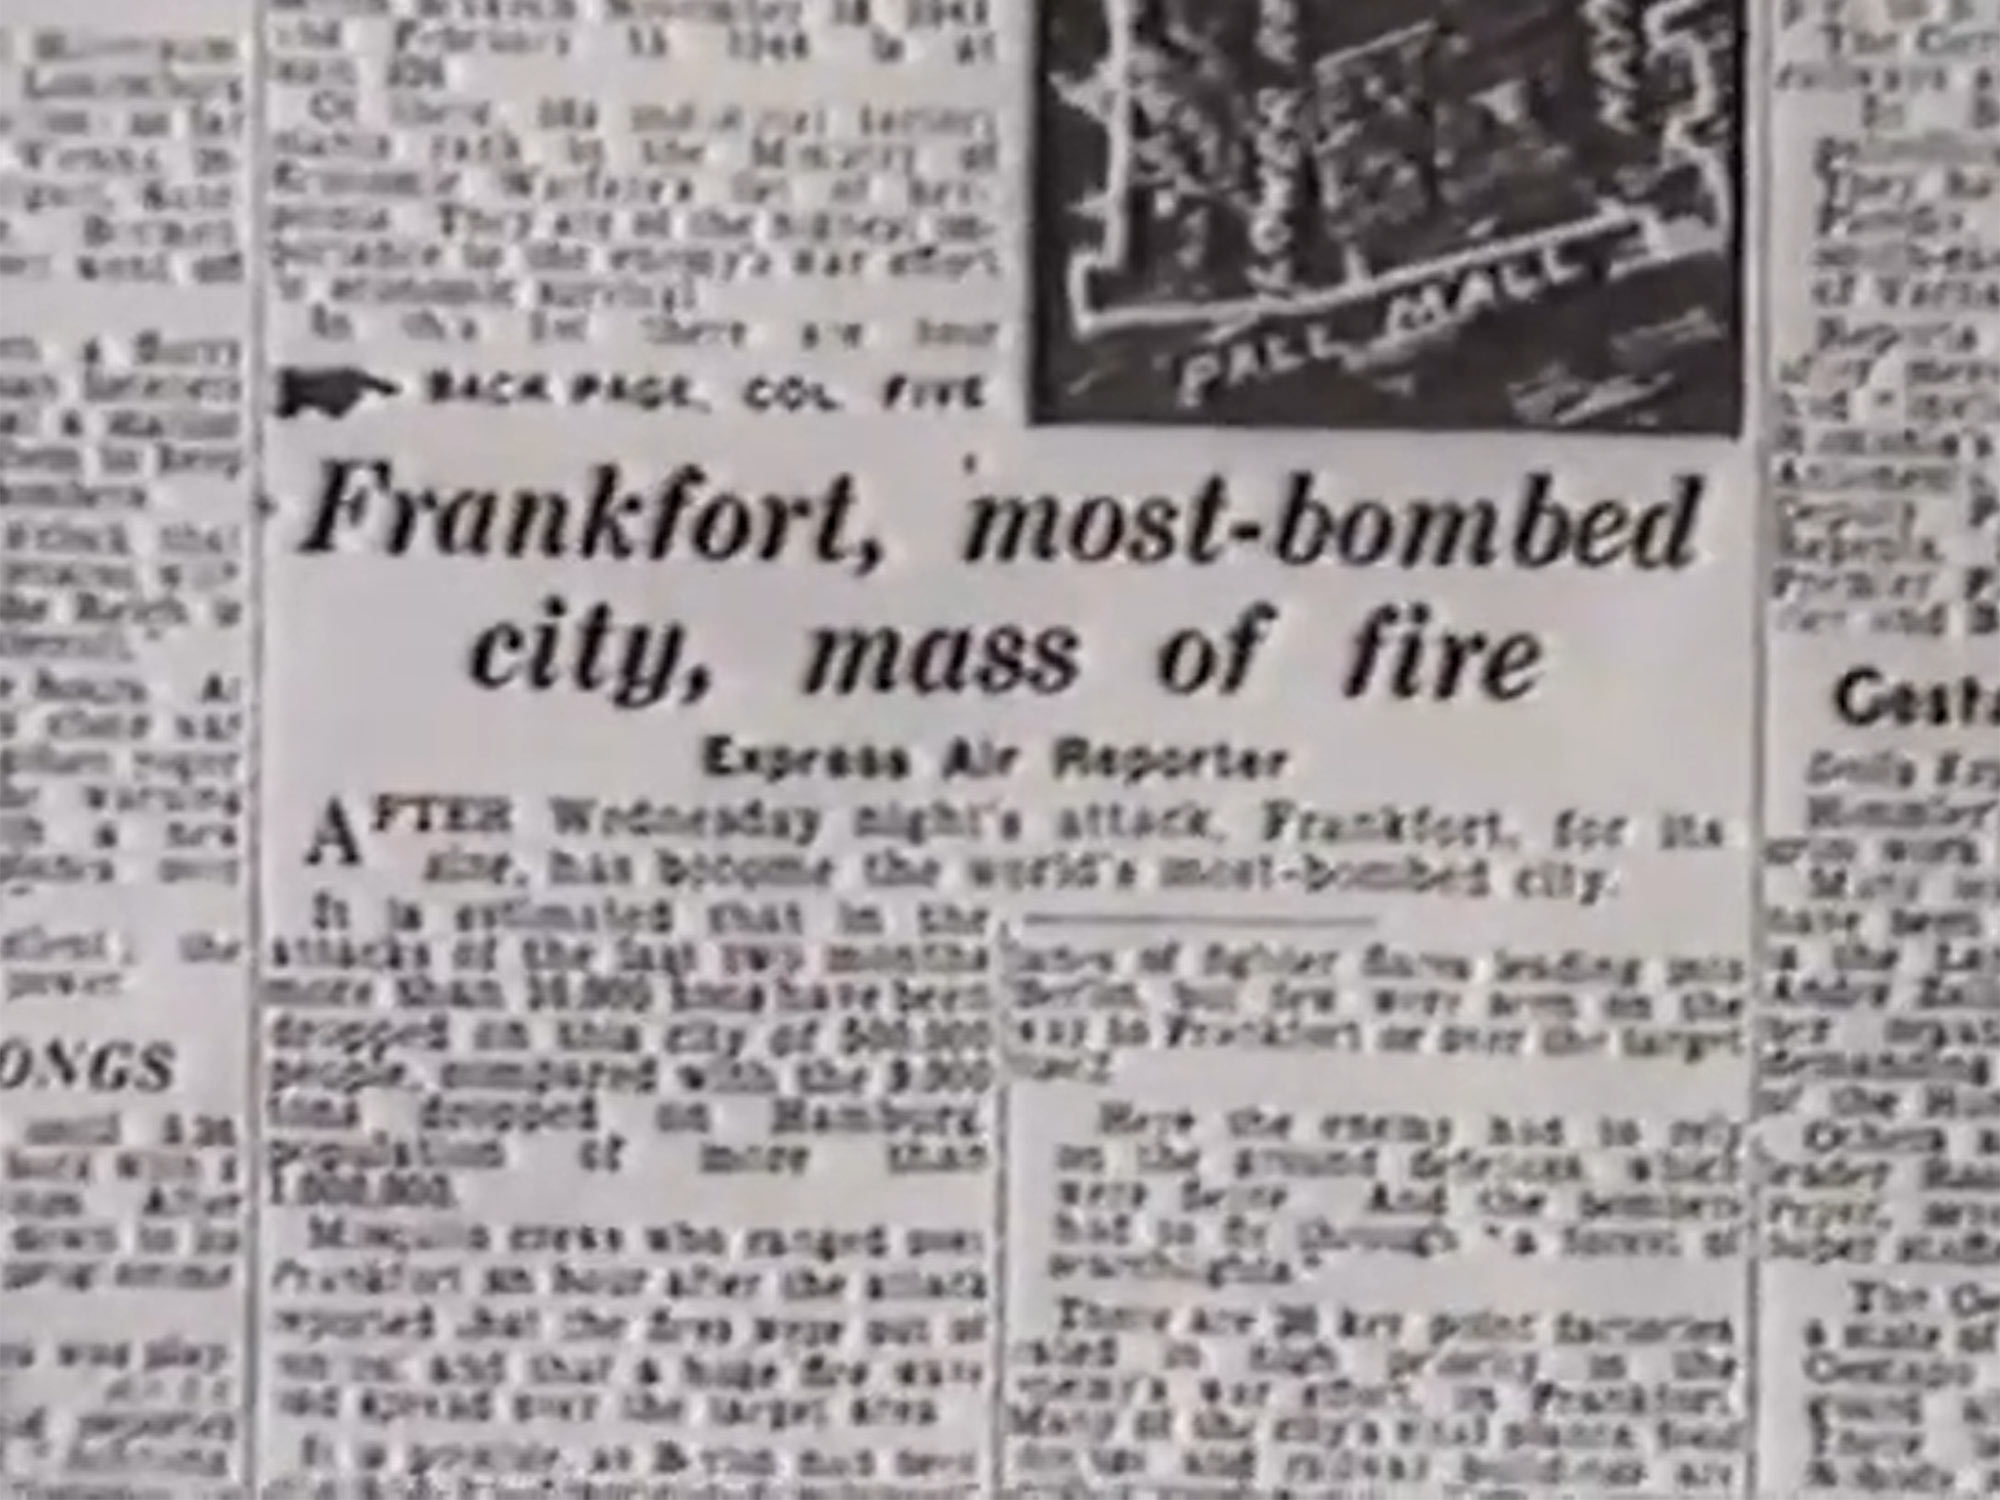 Daily Express: Frankfurt is the most-bombed city of the world during World War II